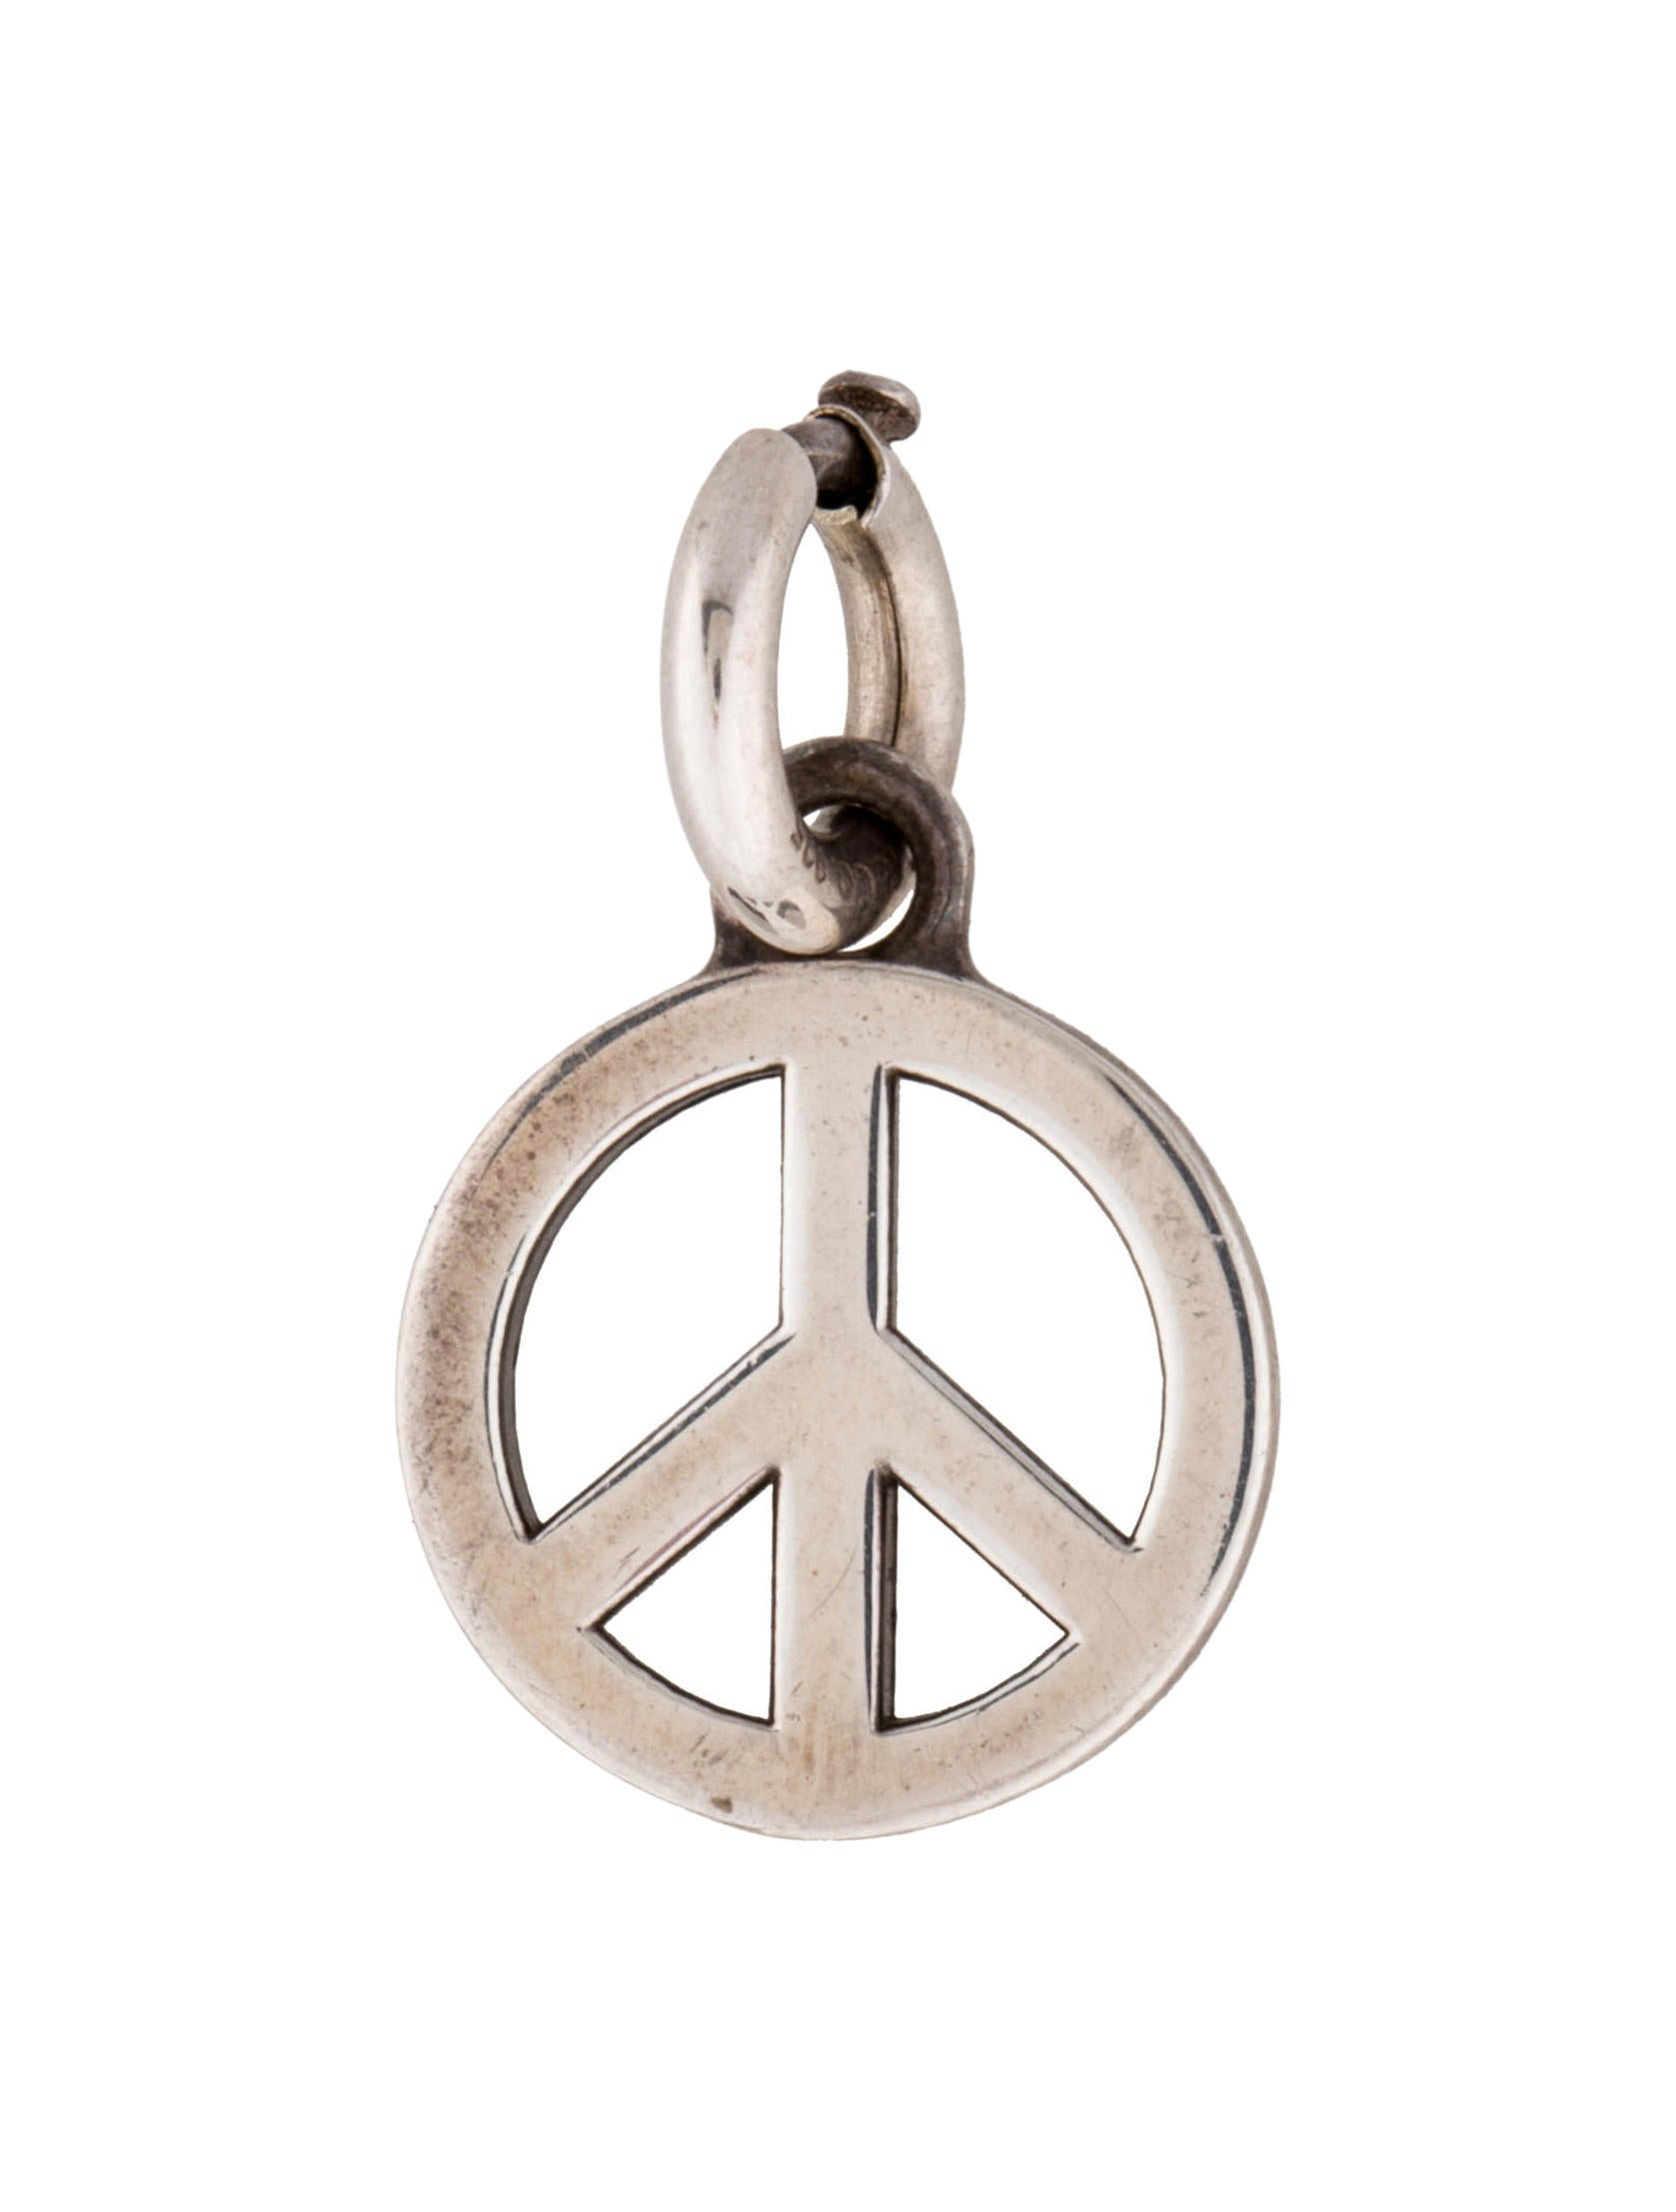 Tiffany co peace sign charm charms tif30965 the realreal peace sign charm buycottarizona Gallery